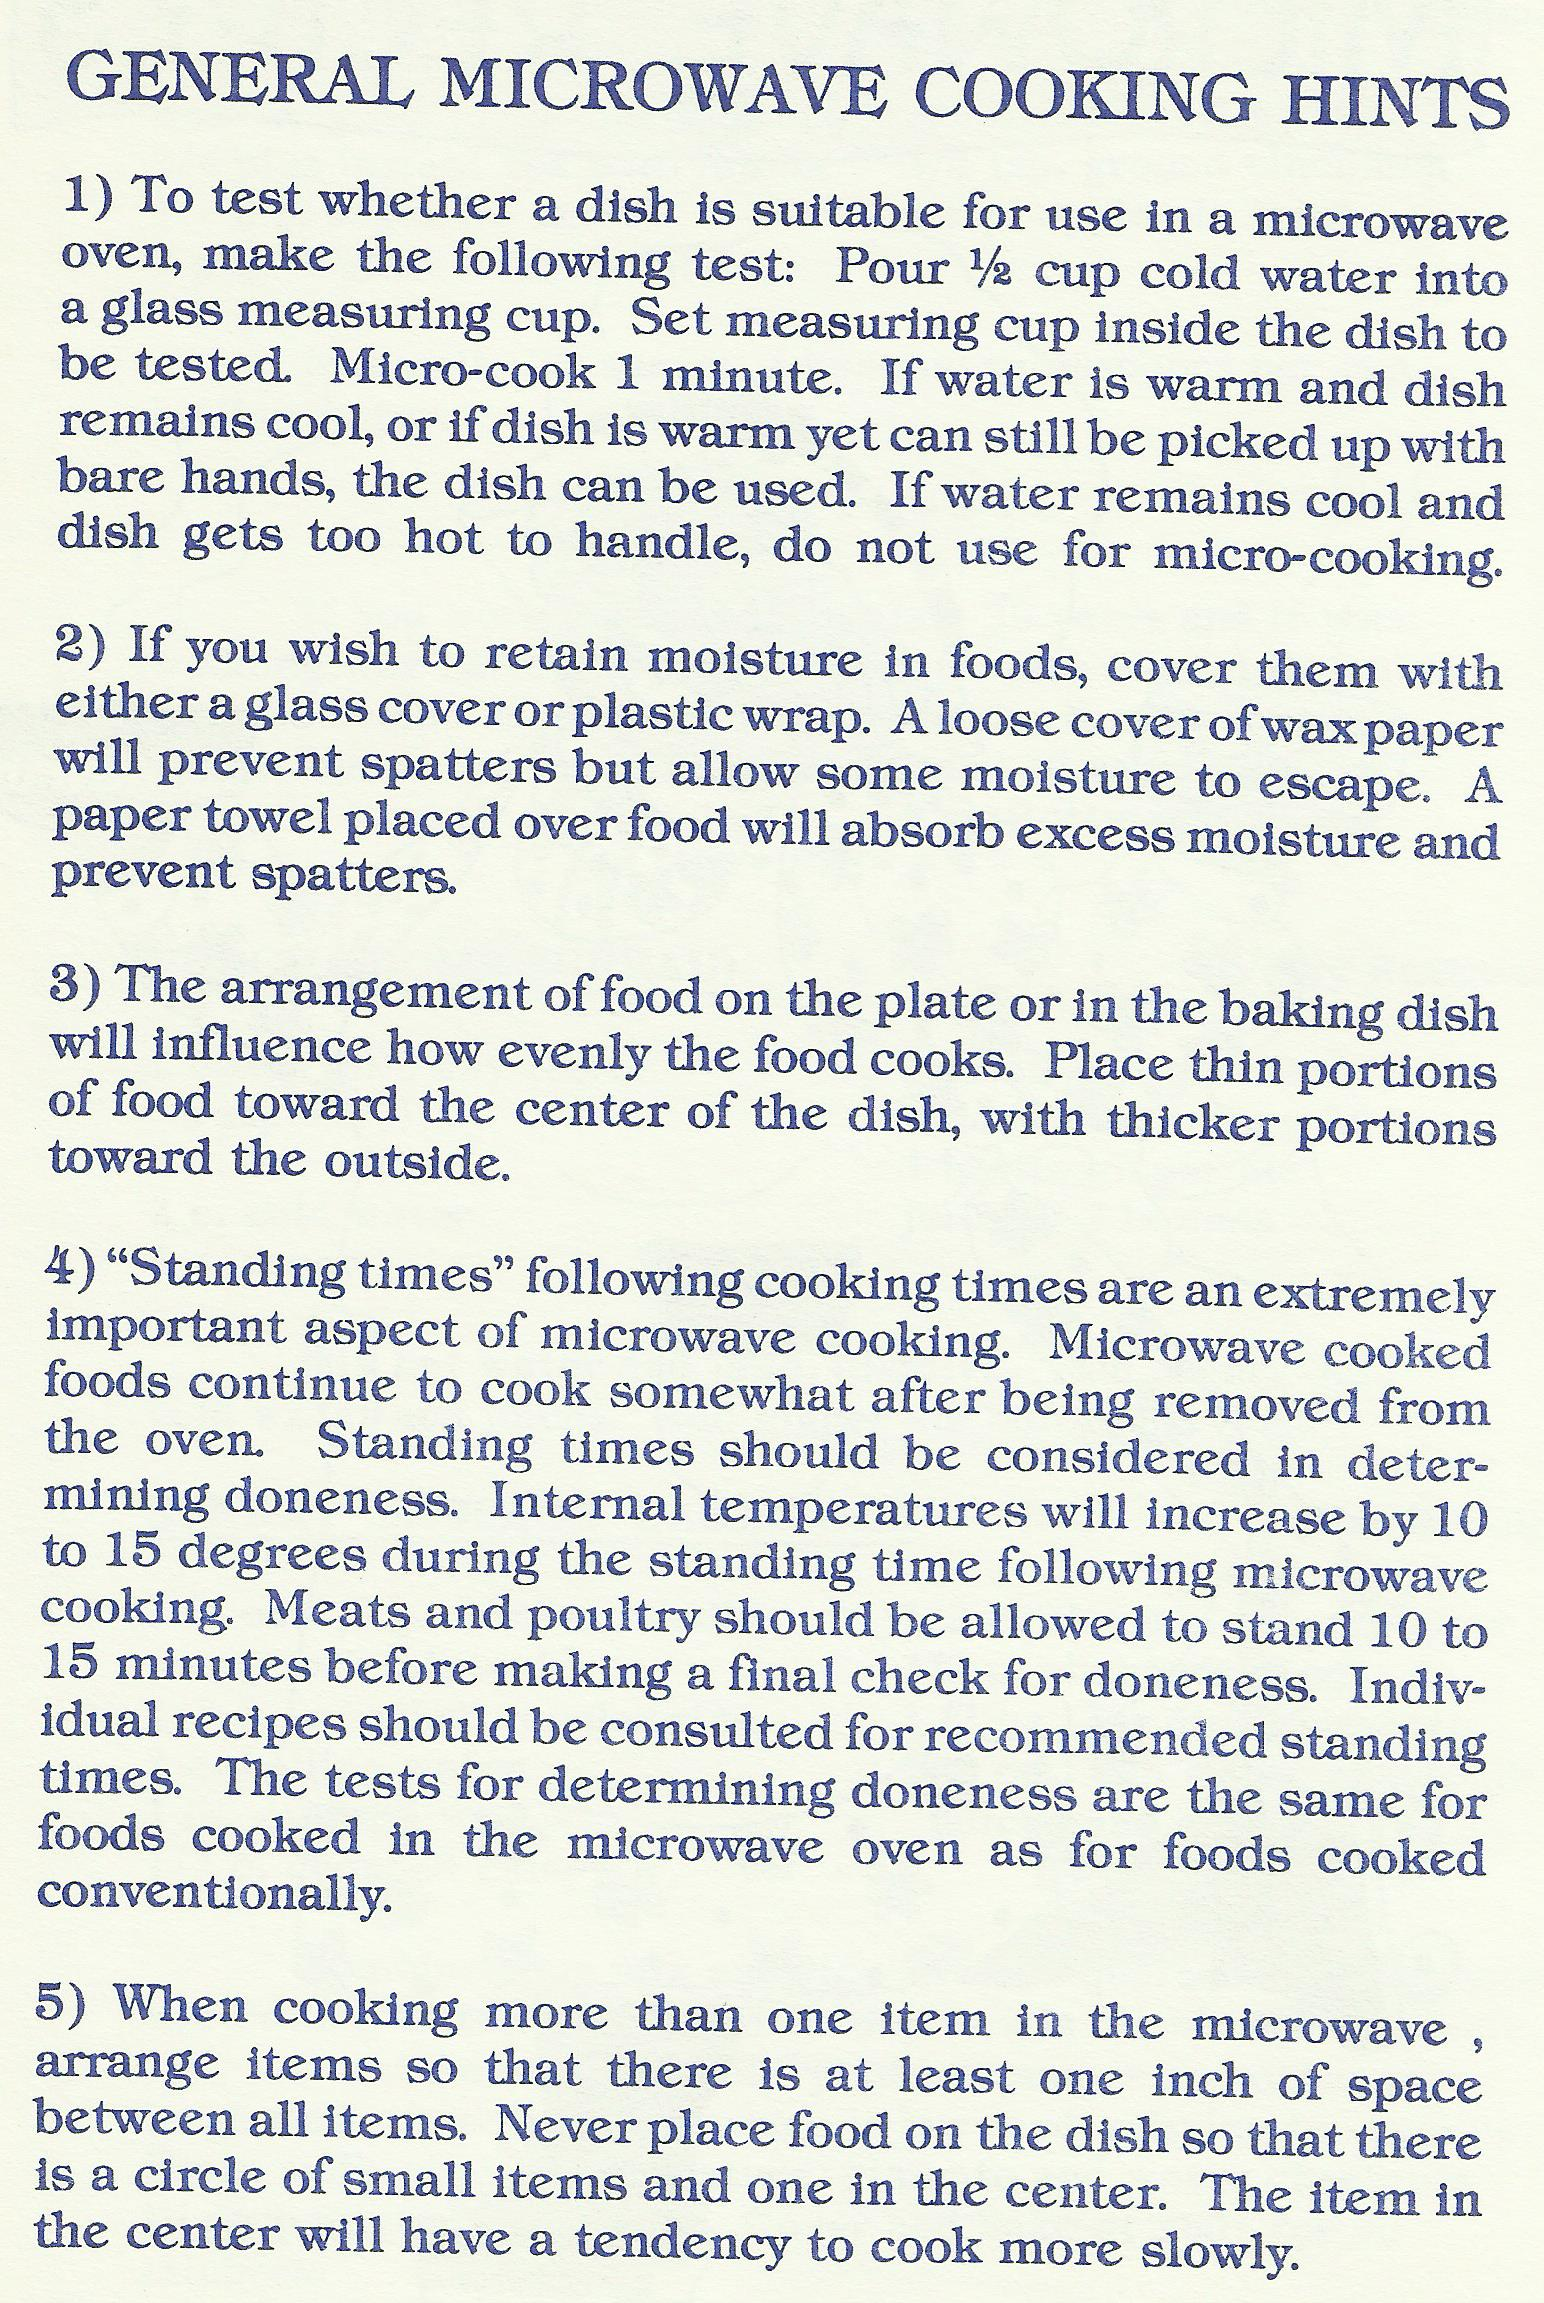 General Microwave Cooking Hints